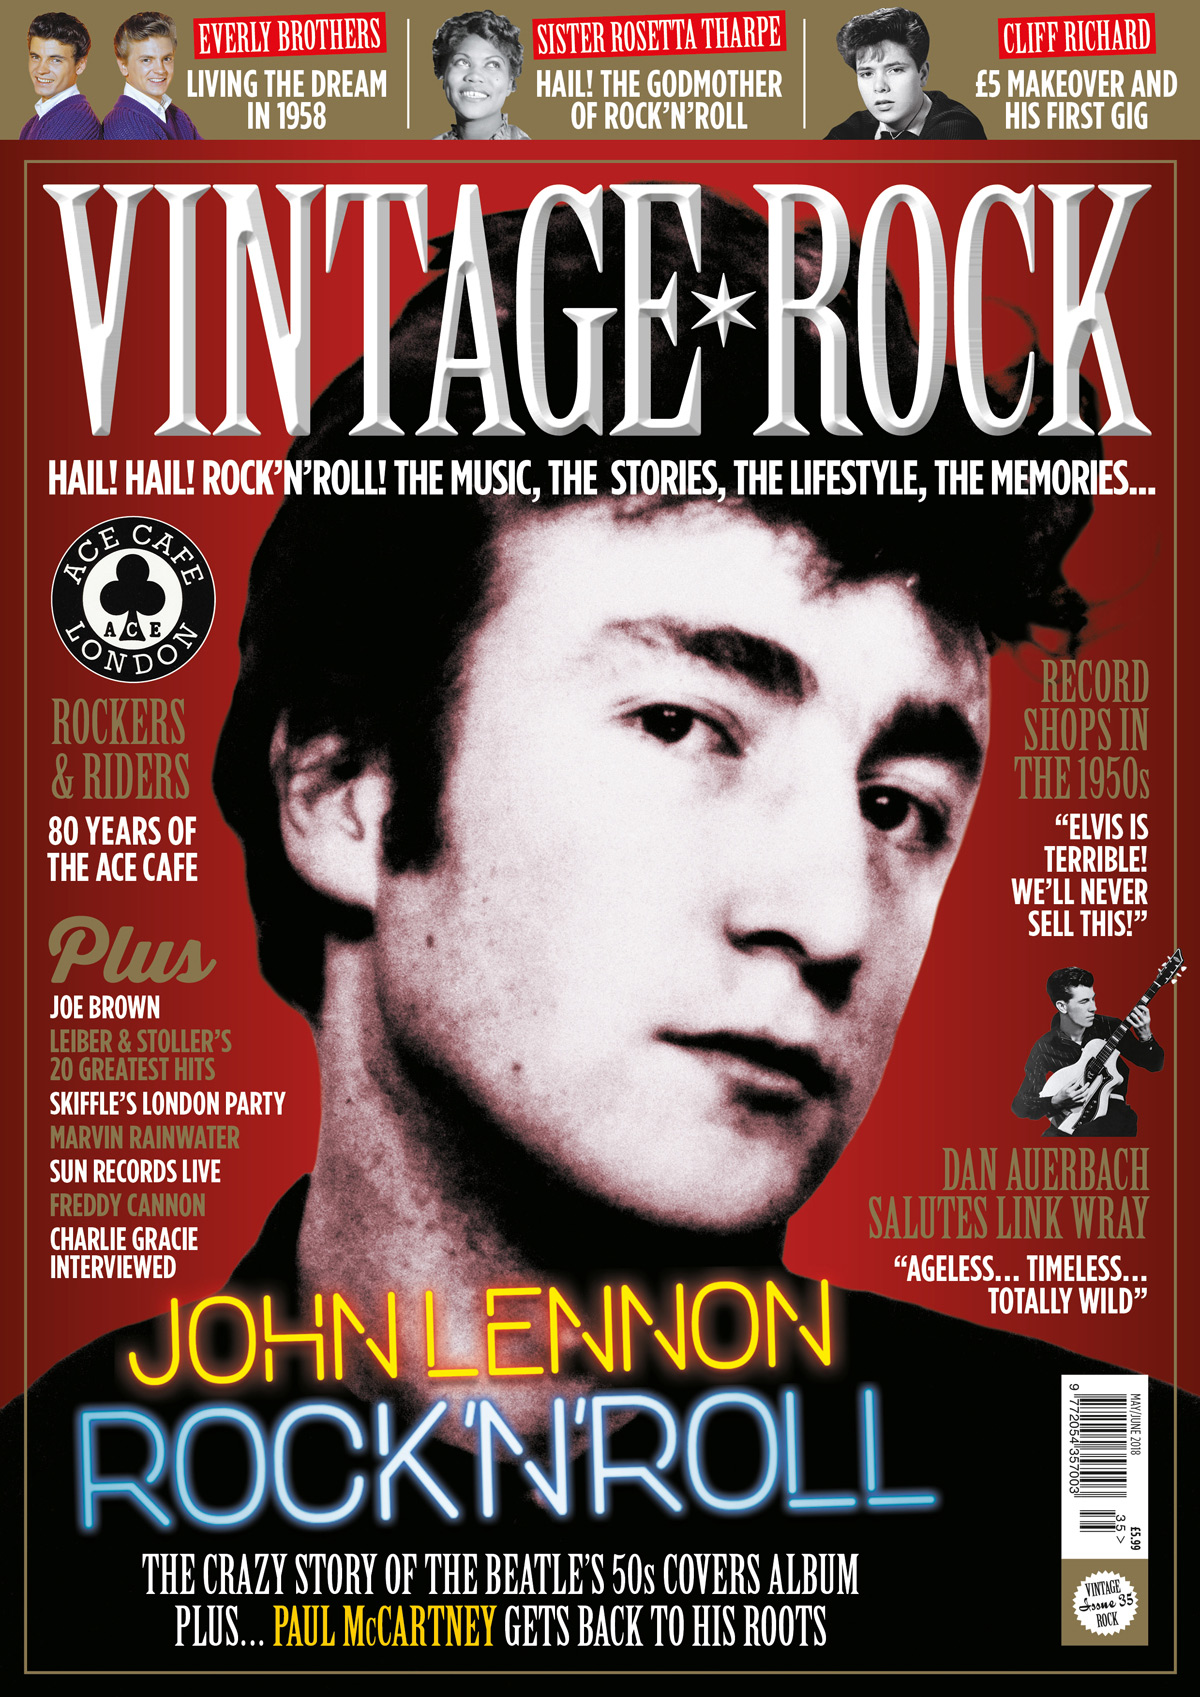 Issue 35 of Vintage Rock magazine is on sale now!